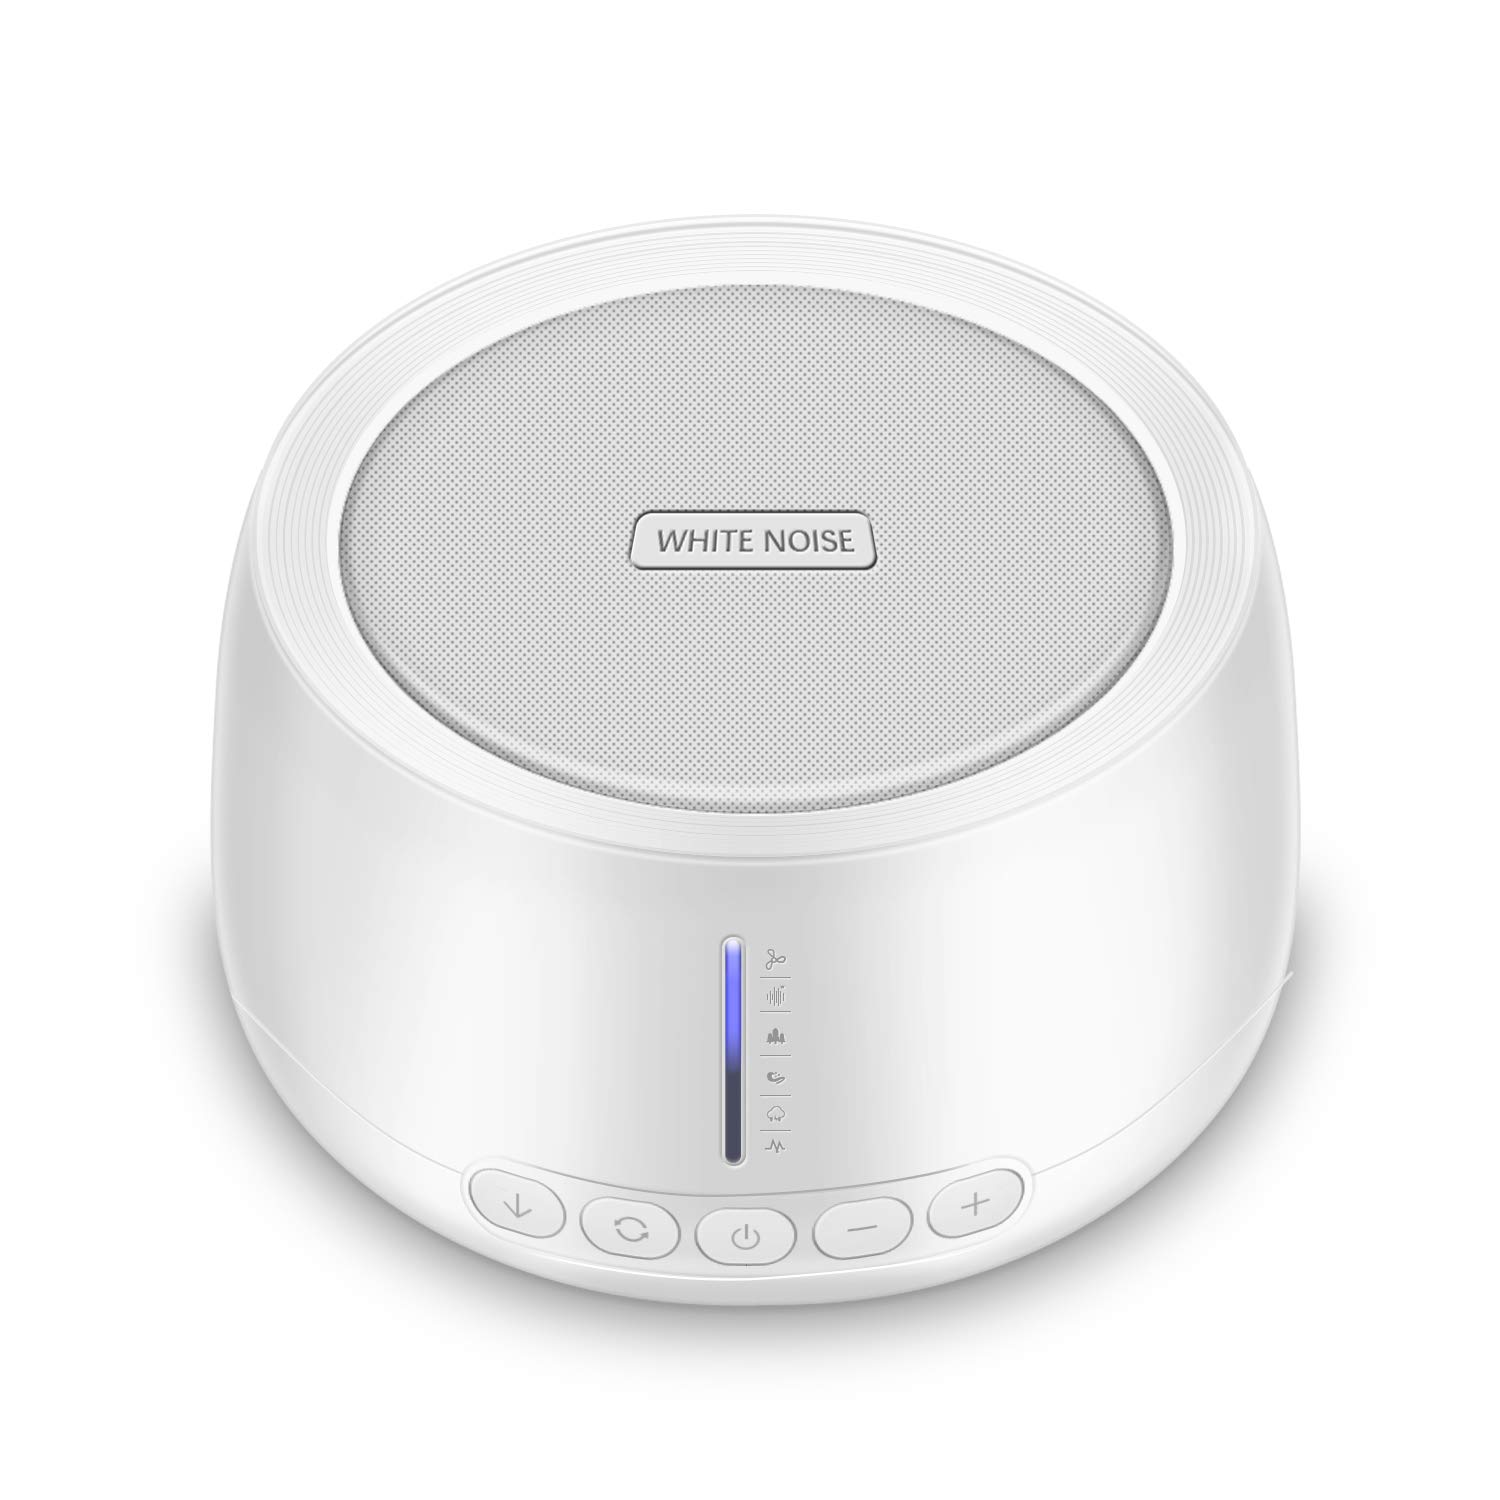 White Noise Machine - MOICO Portable Sound Machines for Sleeping for Baby/Kids/Adults with 30 Unique HiFi Sounds, Headphone Jack for Private Listening, Auto-Off Timer, Adjustable Volume, USB Powered